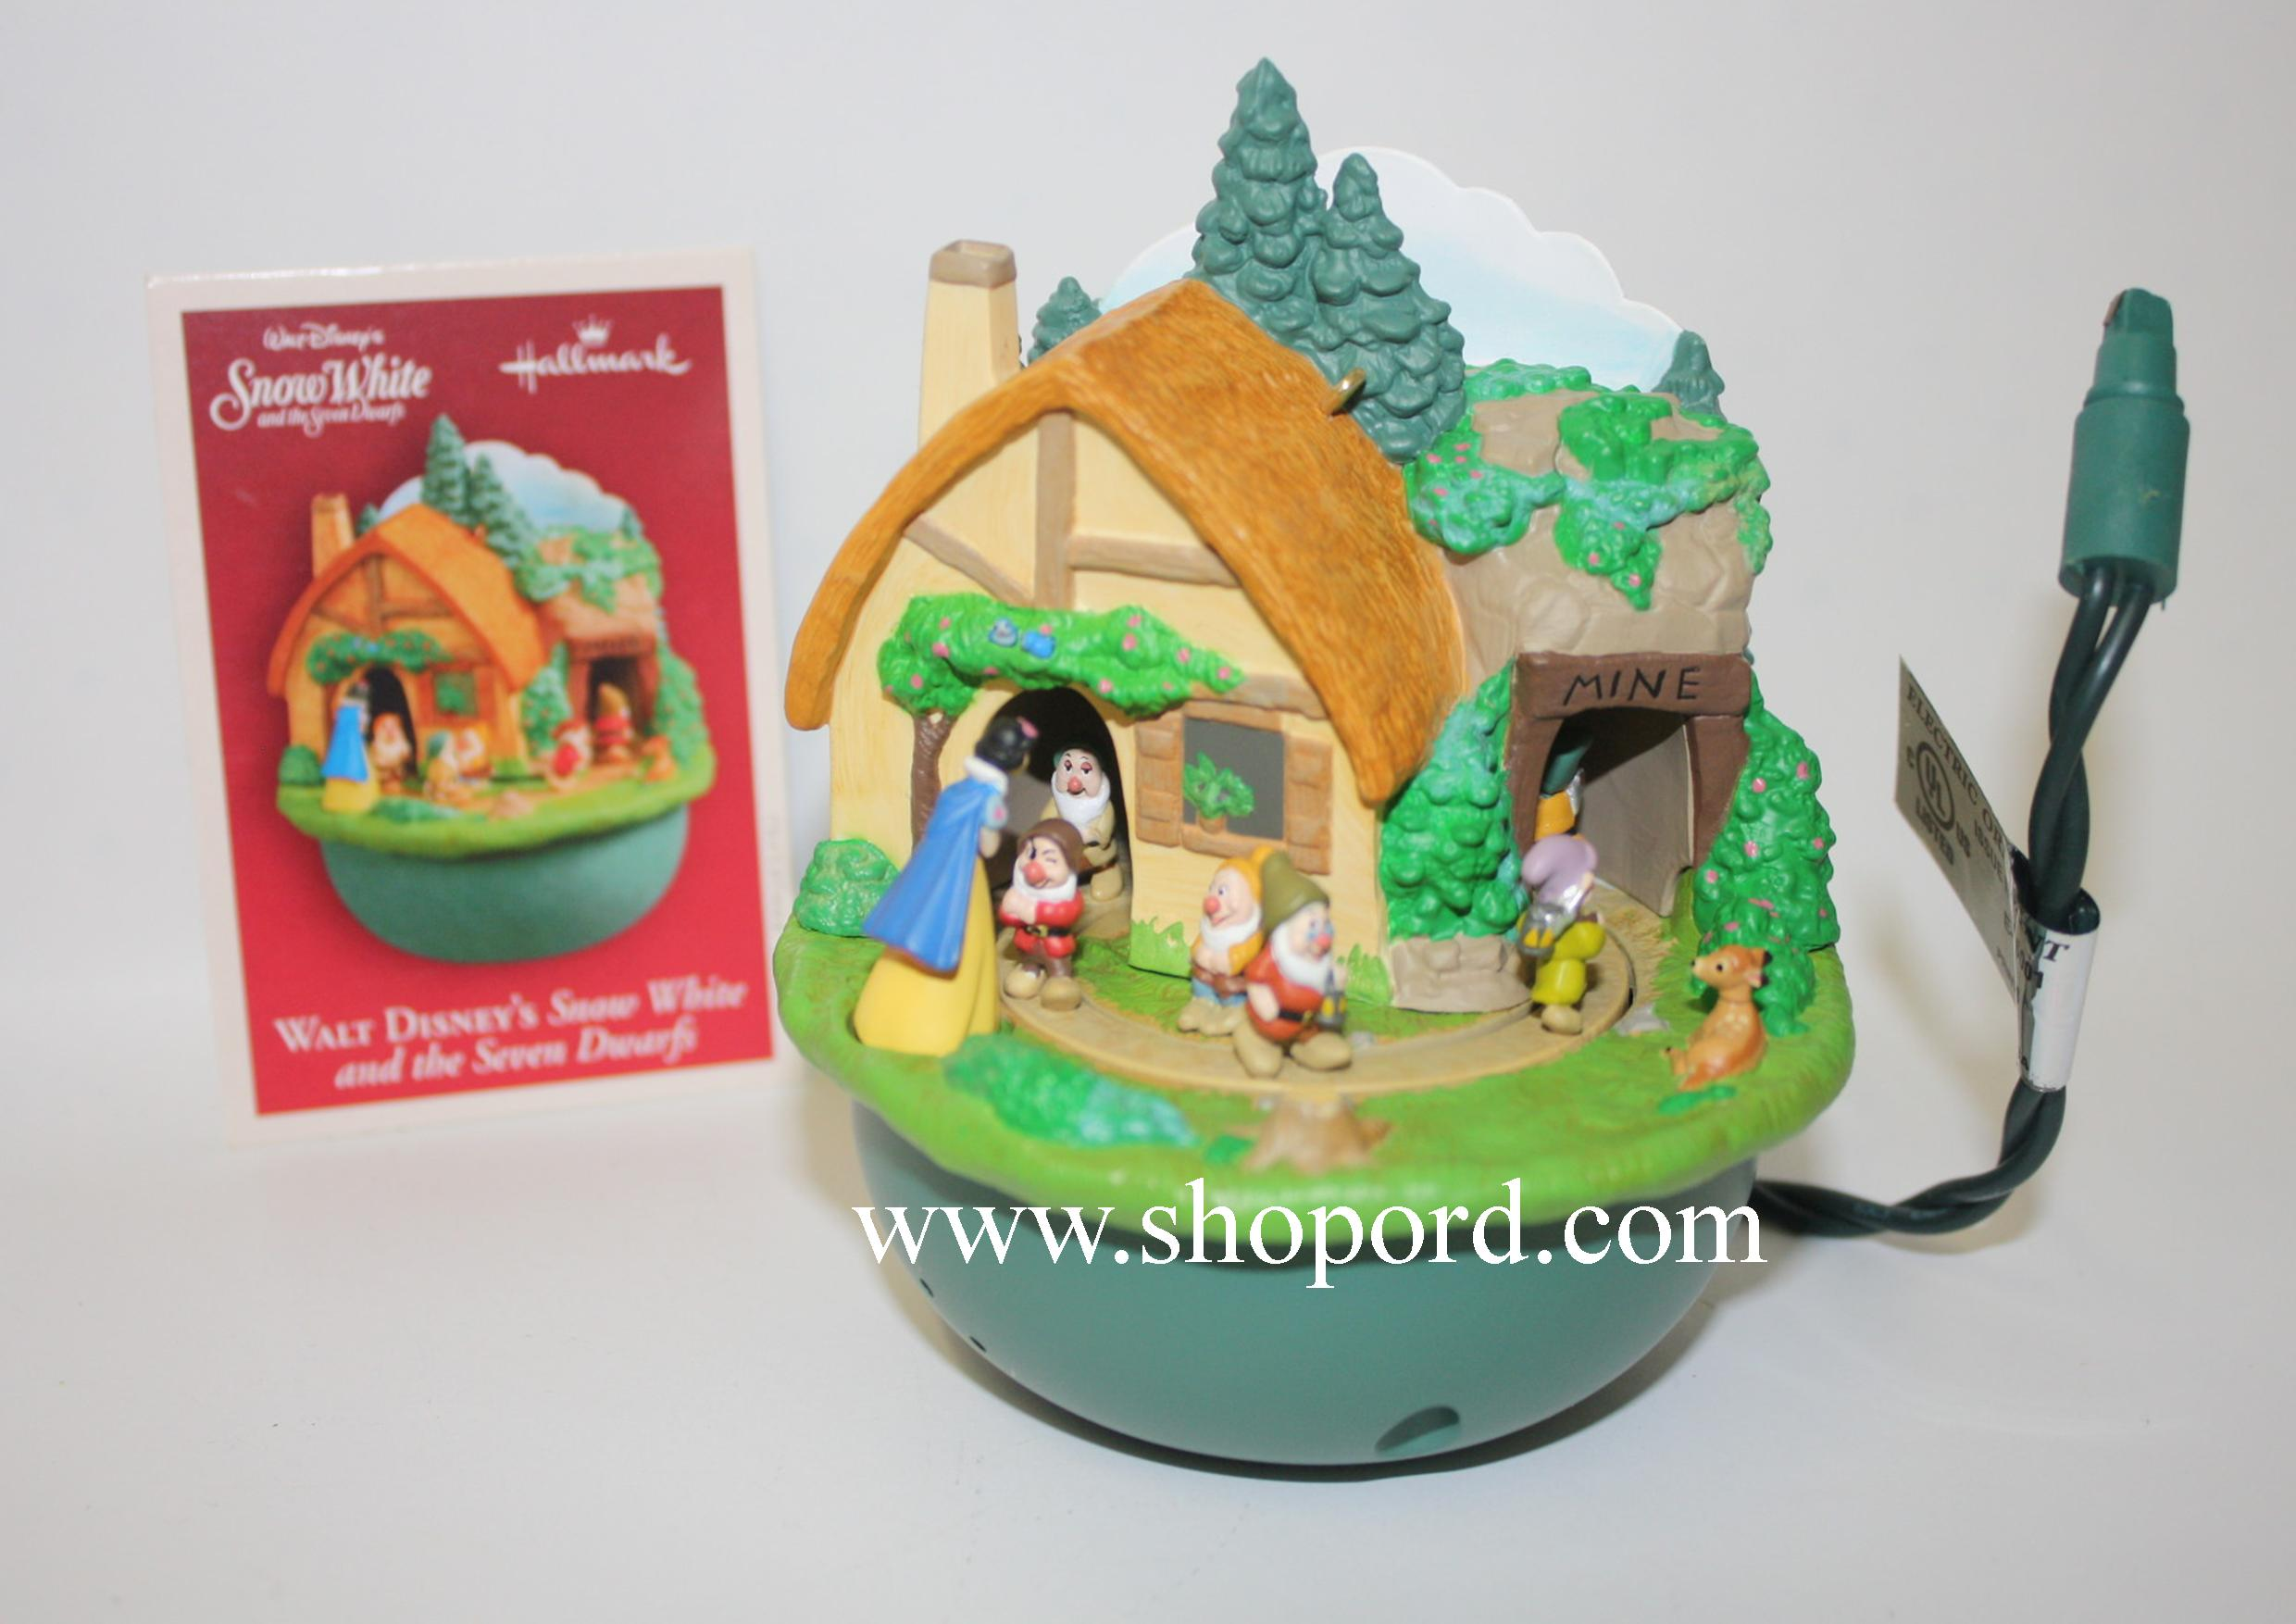 Hallmark 2004 Walt Disney's Snow White And The Seven Dwarfs Ornament QXD5064 Damaged Ornament